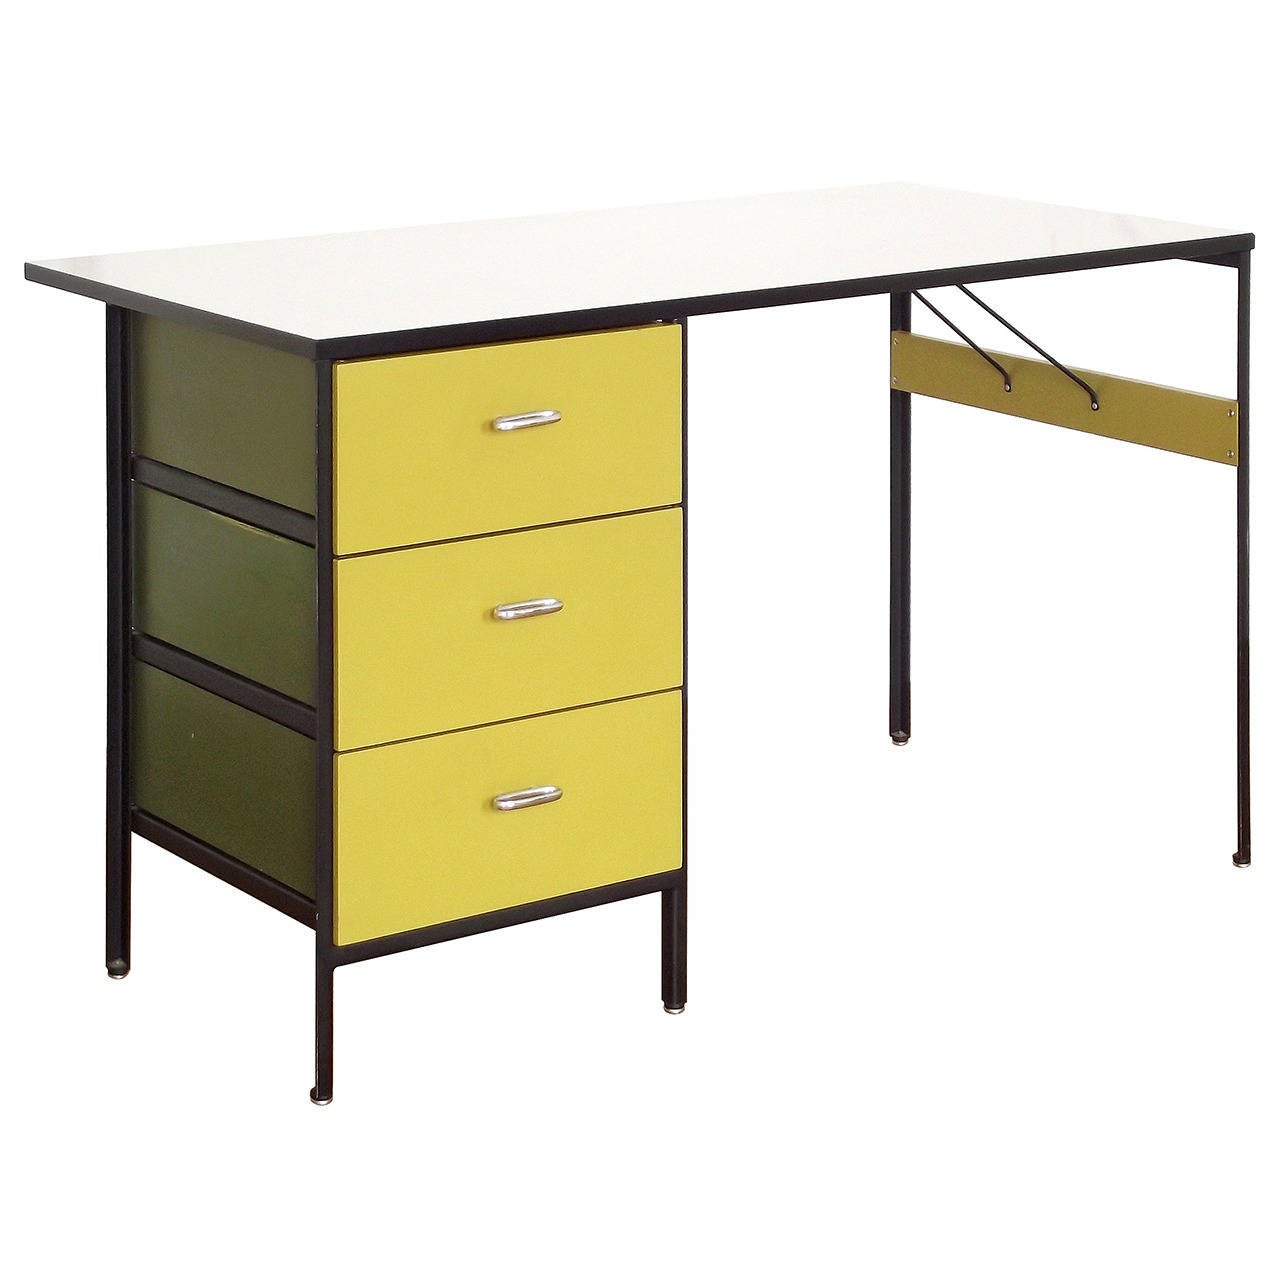 1950s Steel Frame Case Series Desk By George Nelson For